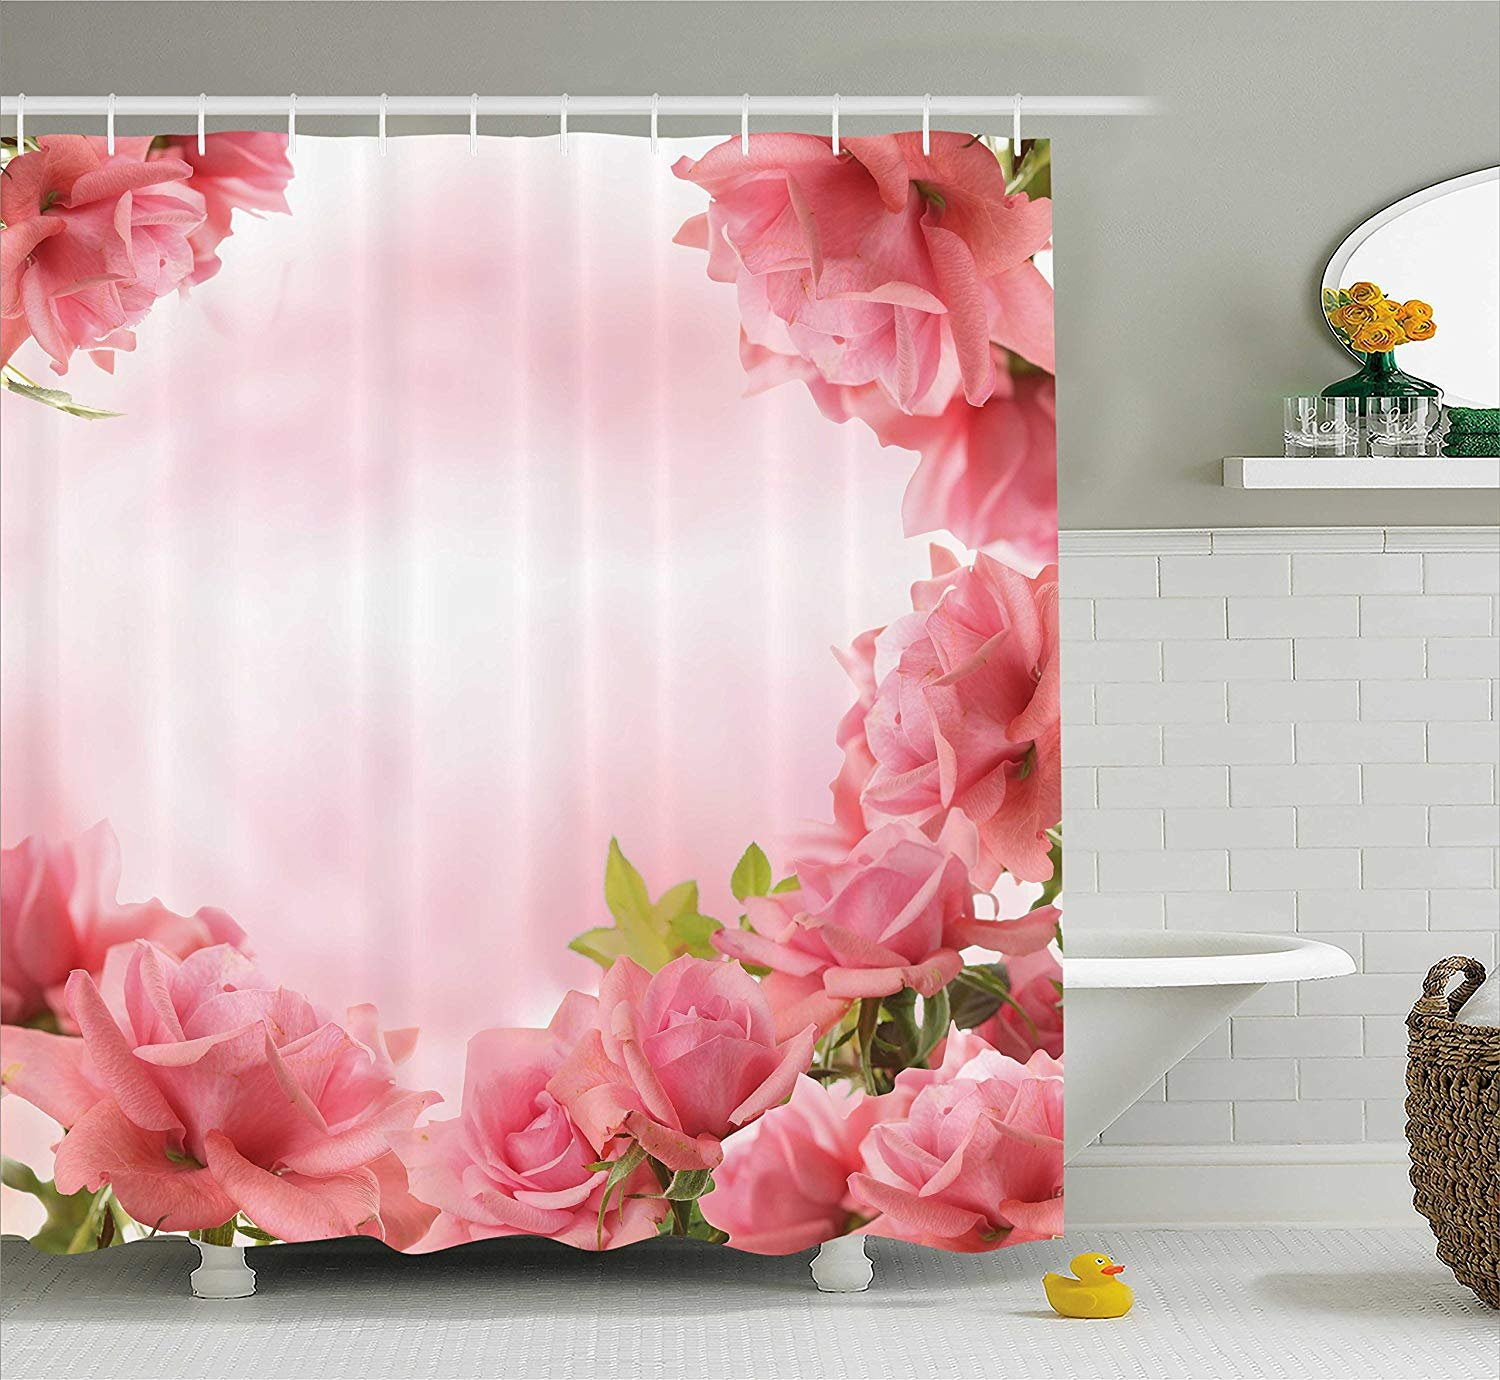 Printing Valentine Shower Curtain, Framework with Romantic Roses Leaves Bridal Love Wedding Marriage Corsage, Rustproof Metal Grommets for Bathroom Showers and Bathtubs, 72 x 84 Inches Pink Coral